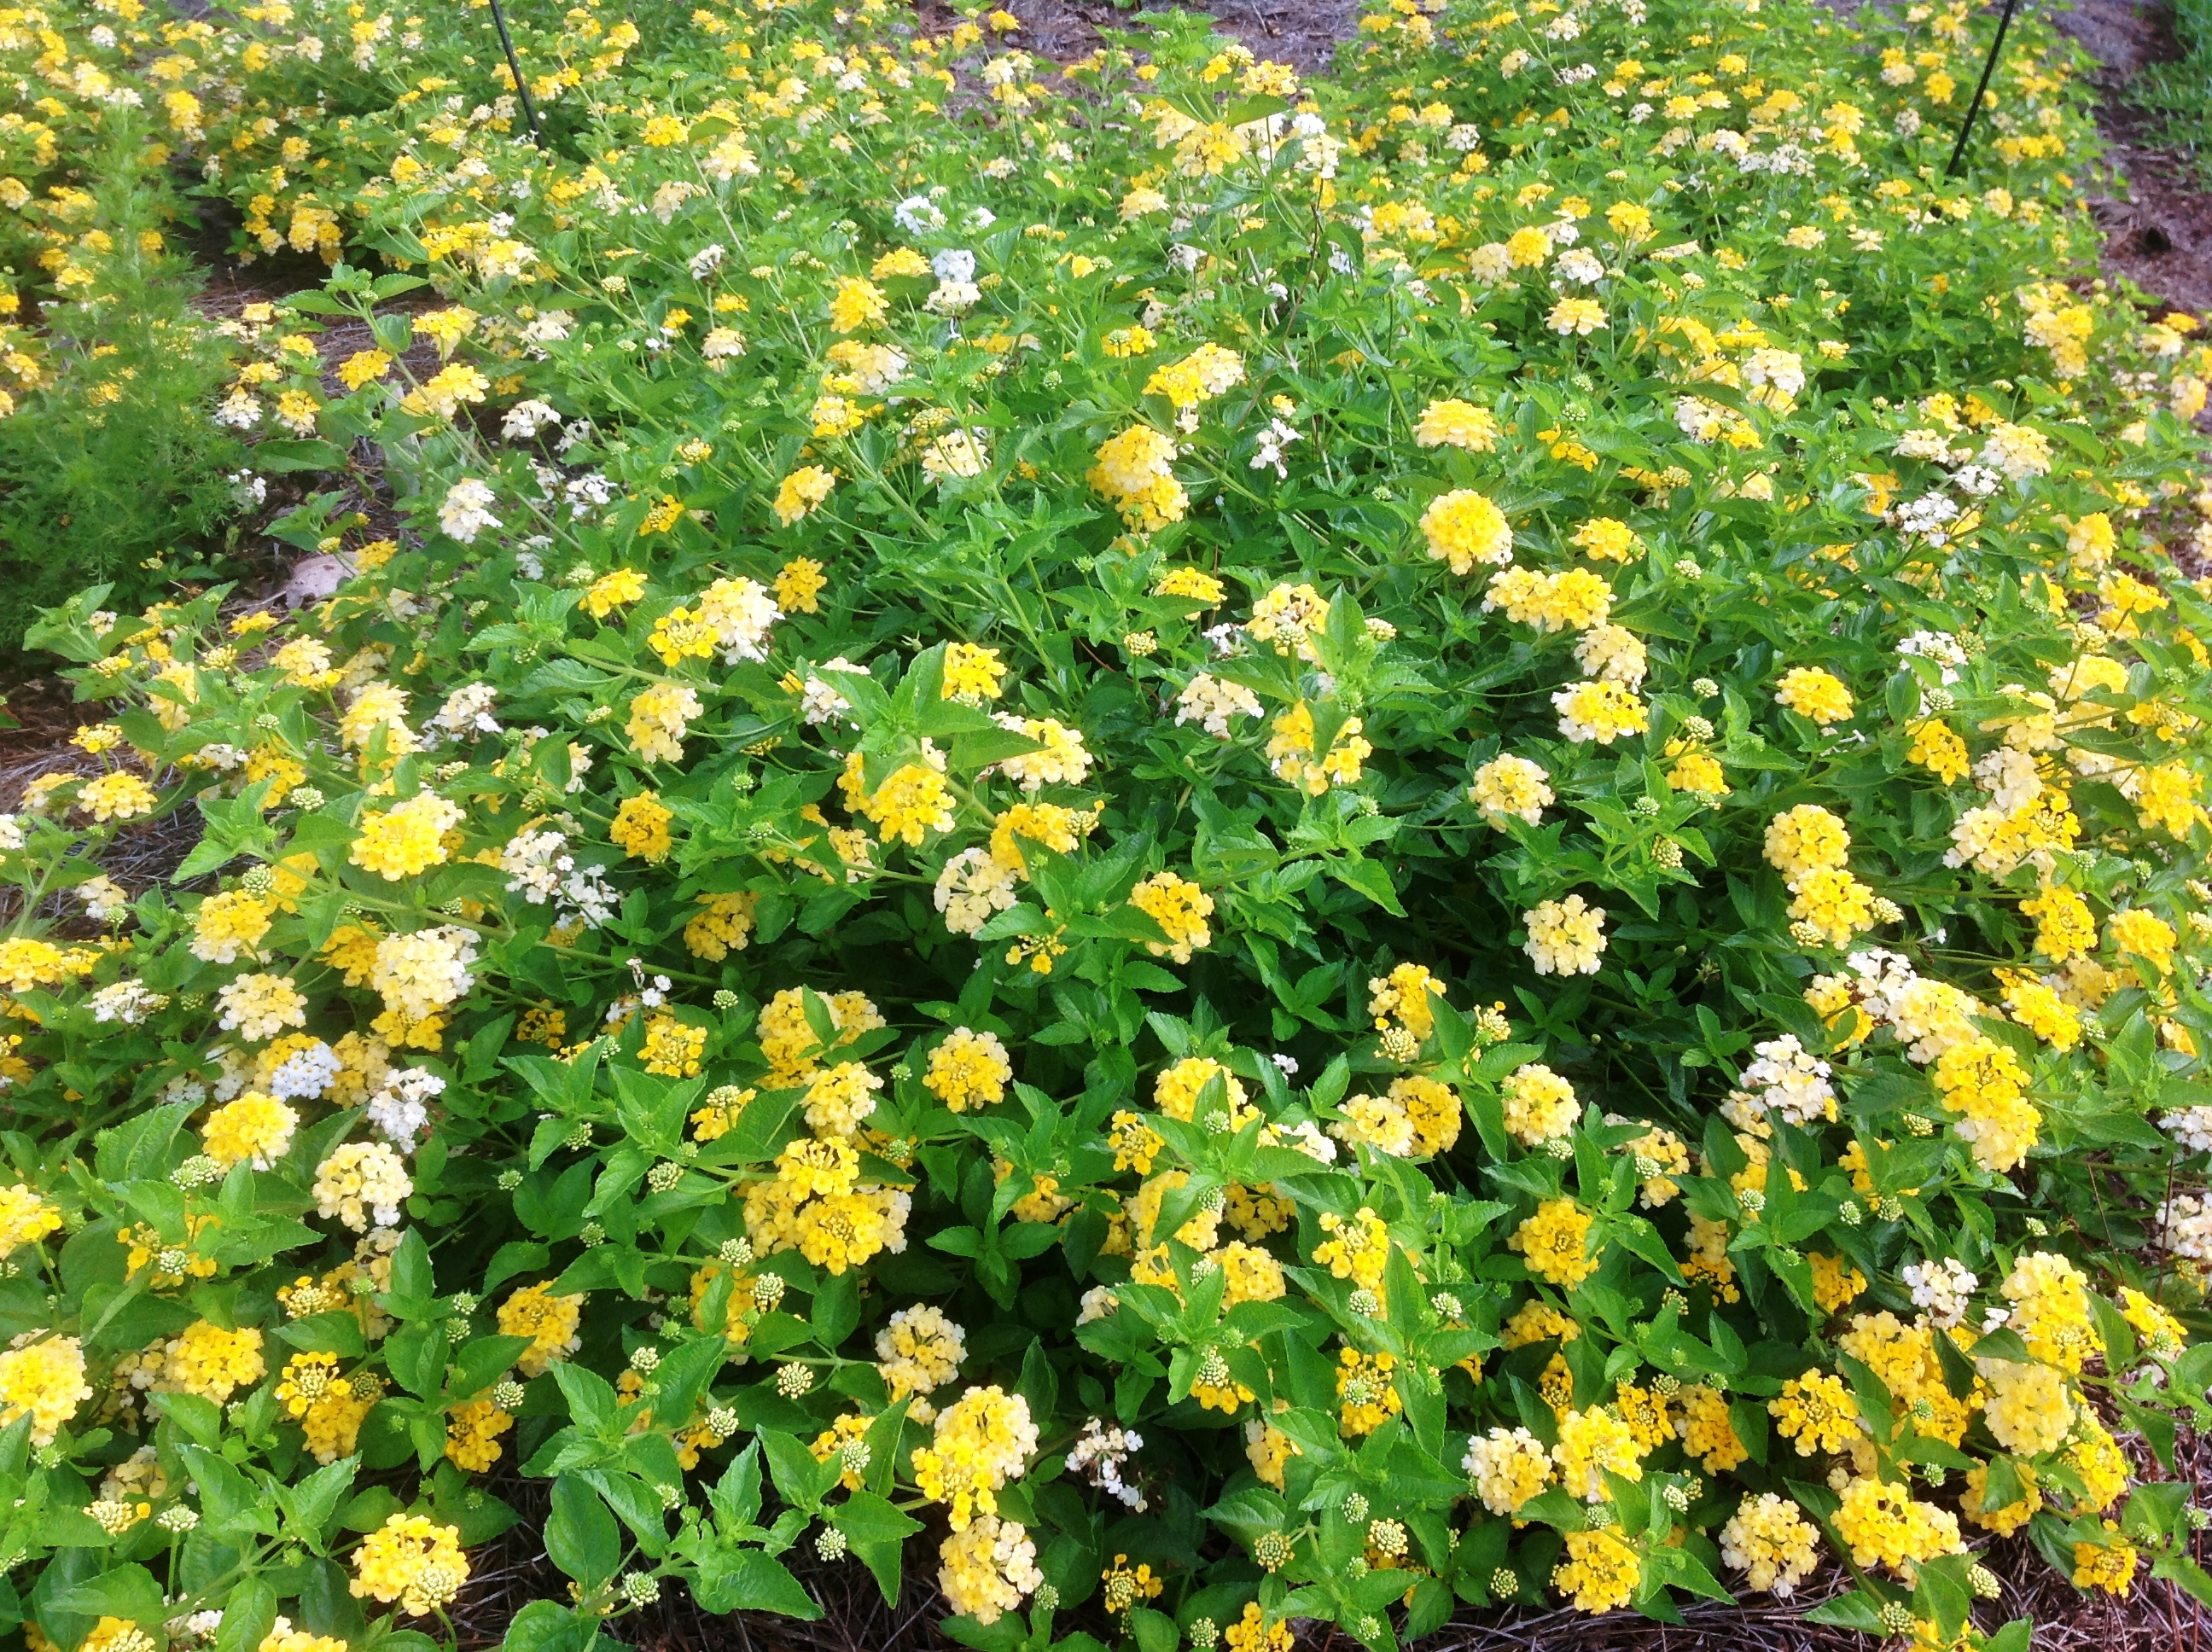 Chapel Hill Community Center >> There's still time to plant lantanas - LSU AgCenter